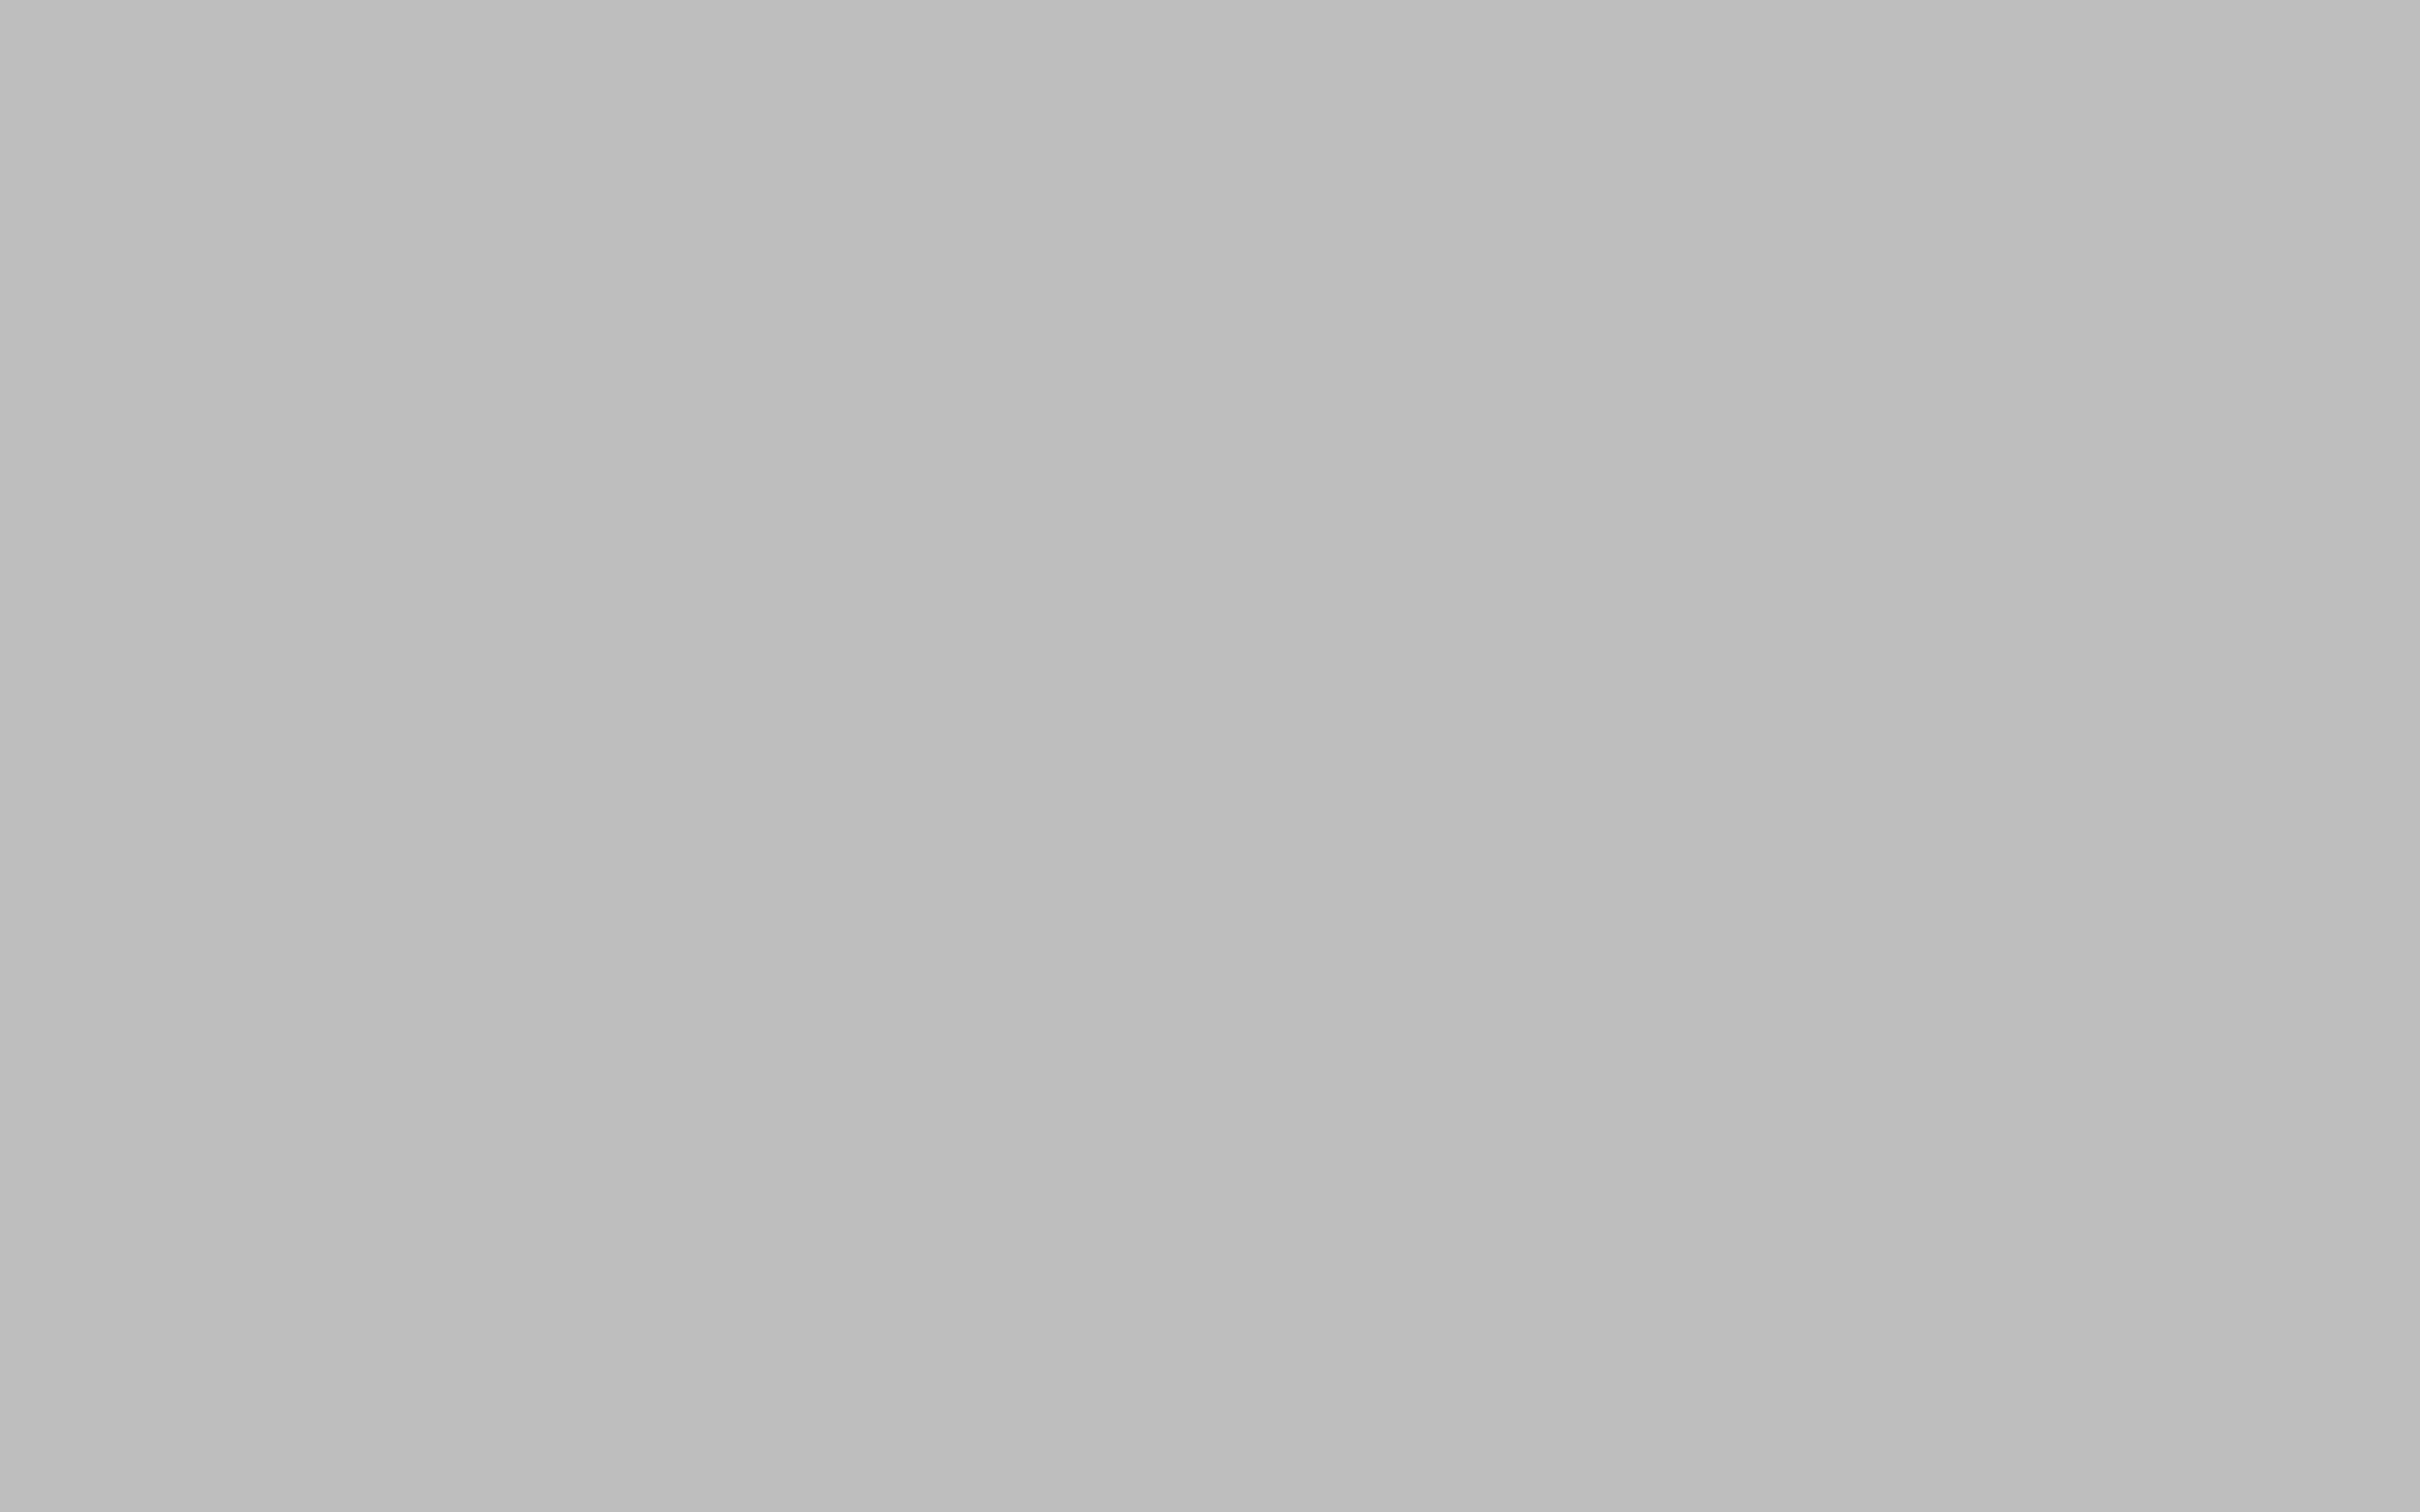 2560x1600 Gray X11 Gui Gray Solid Color Background